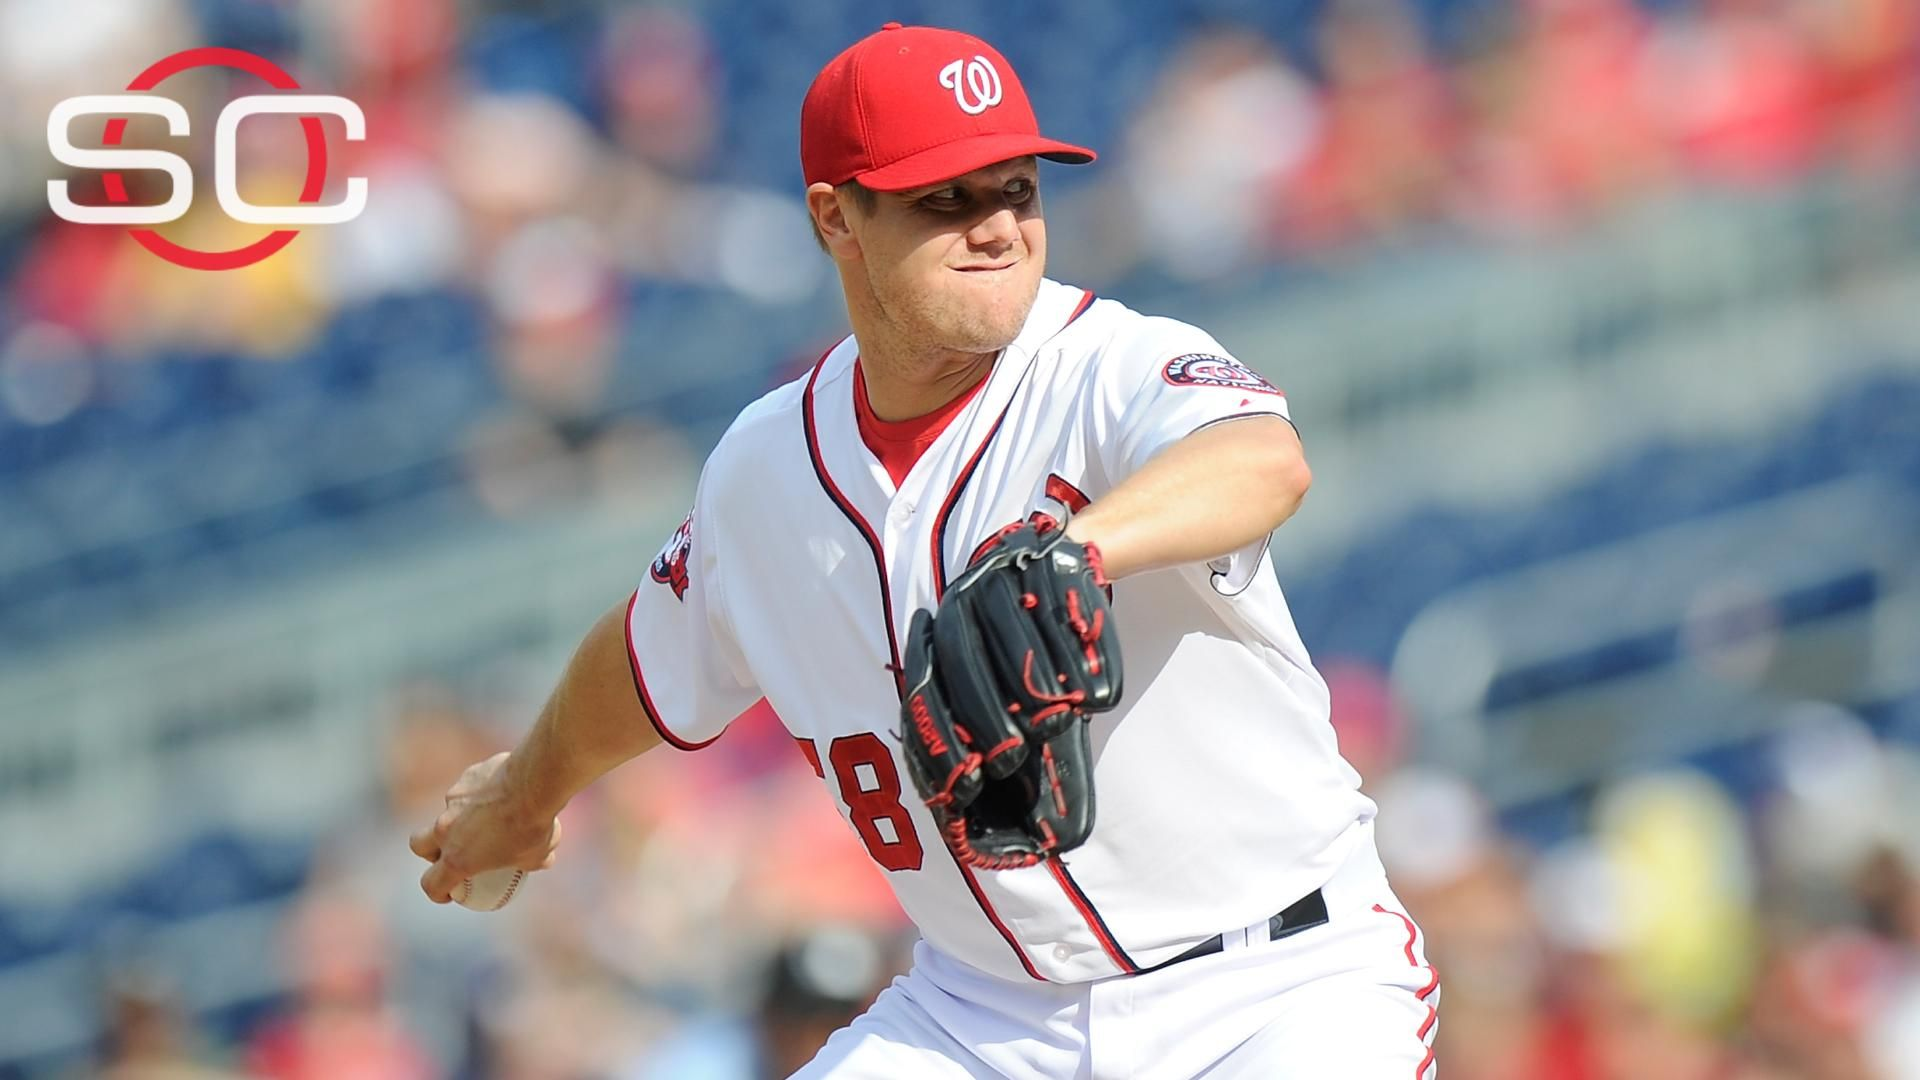 Papelbon suspended for throwing at Machado